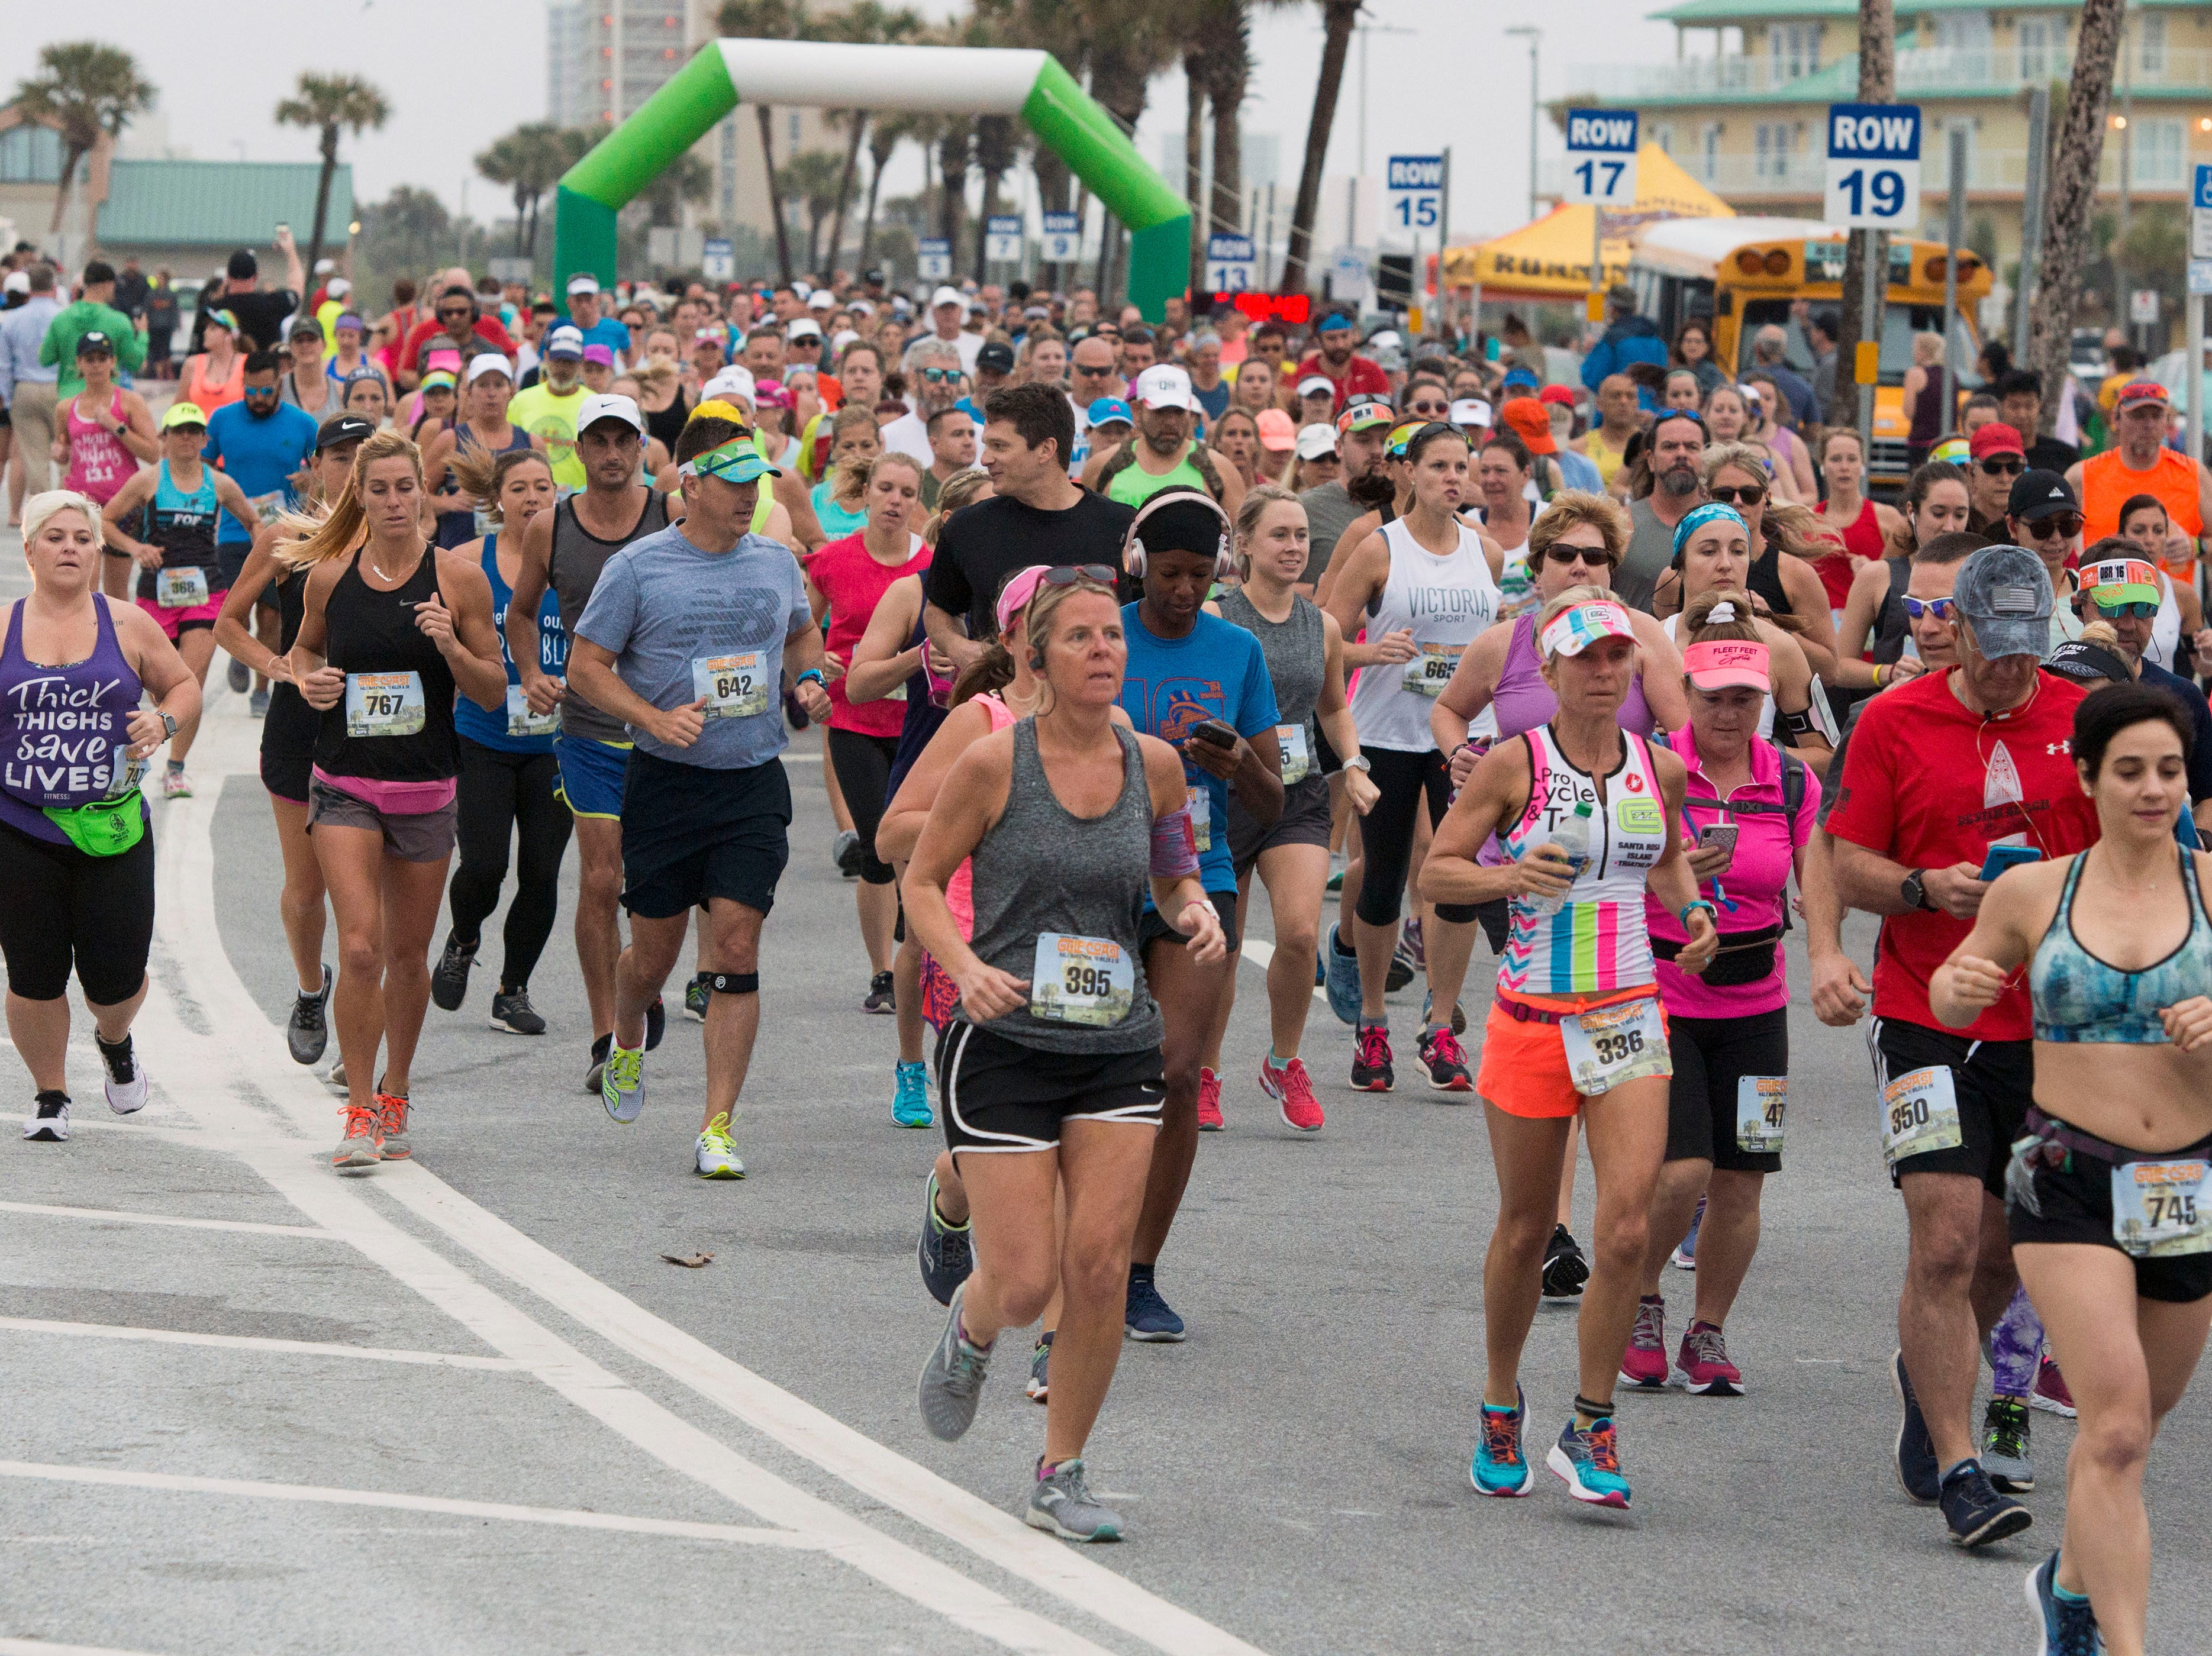 Runners make there way along the course Sunday, April 7, 2019 during the Gulf Coast Half Marathon at Pensacola Beach. The race included a half marathon, 10 miler and 5K.